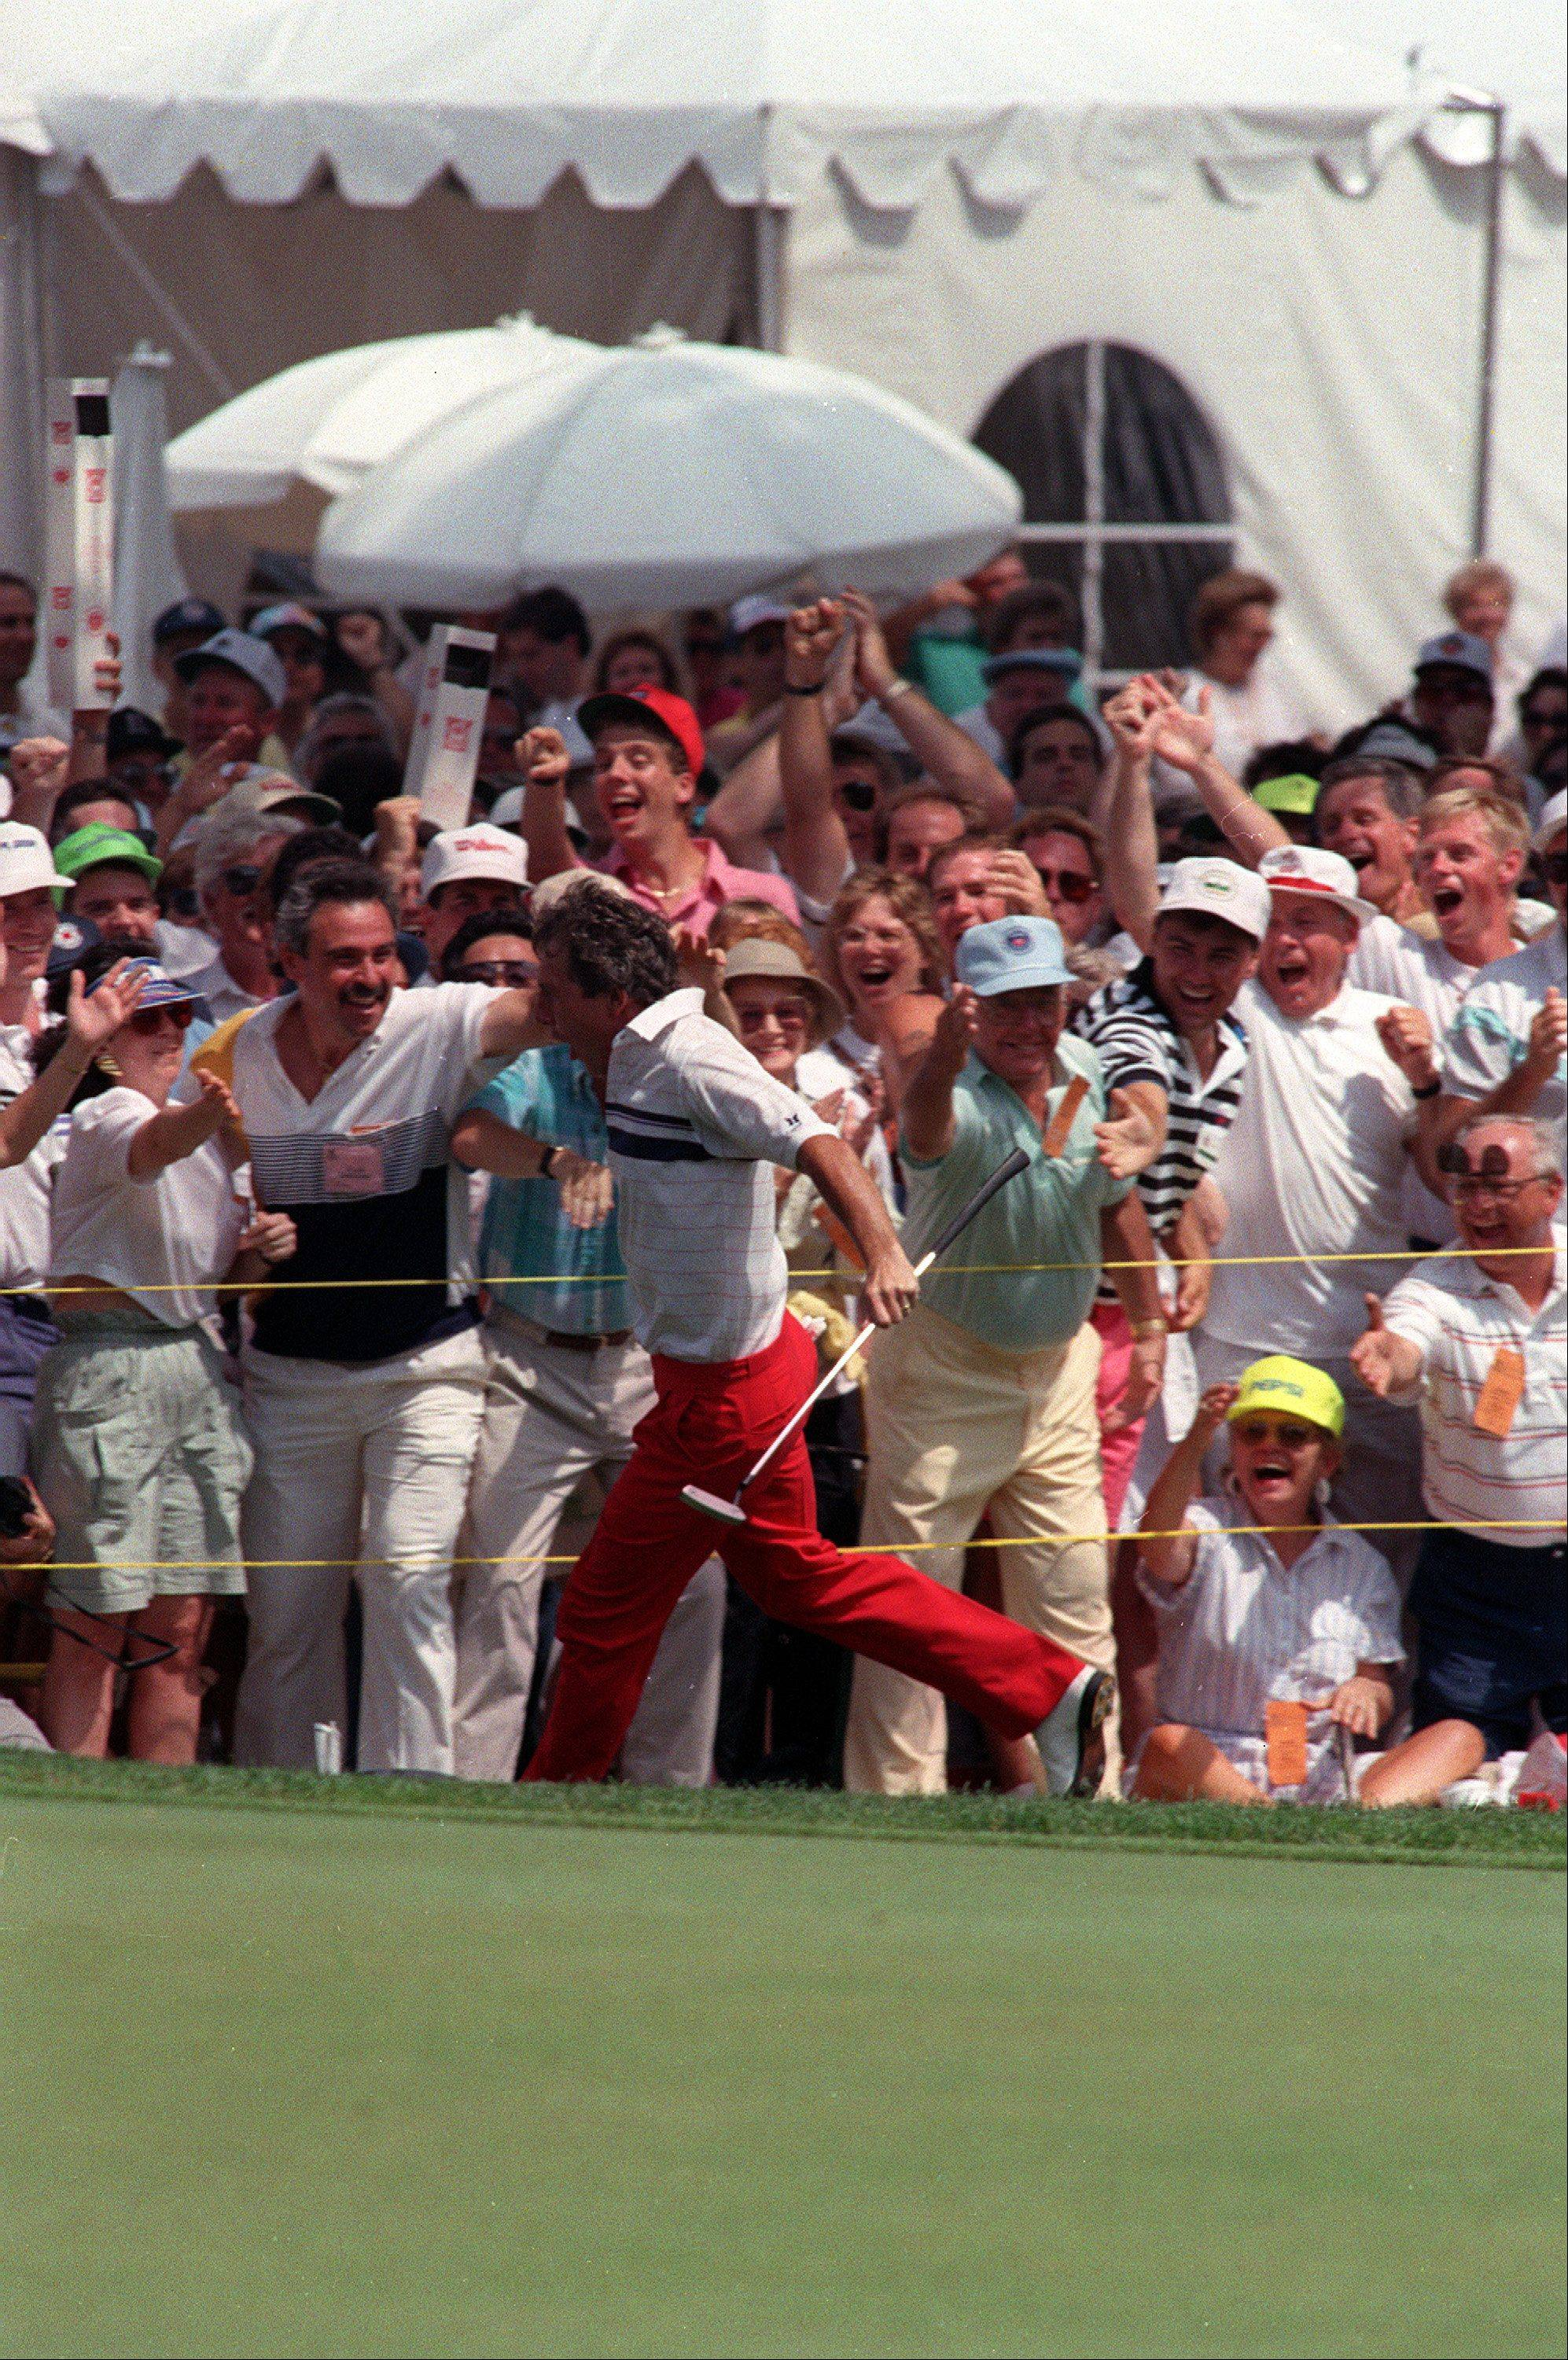 Two time U.S. Open winner Hale Irwin gets a round of high fives from the fans surrounding the 18th green after sinking a 60-foot putt during the U.S. Open at Medinah Country Club in Medinah, Ill., Sunday, June 17, 1990. The play put Irwin in the clubhouse at 8-under for the tournament. Irwin won the championship in playoffs with a score of 280.